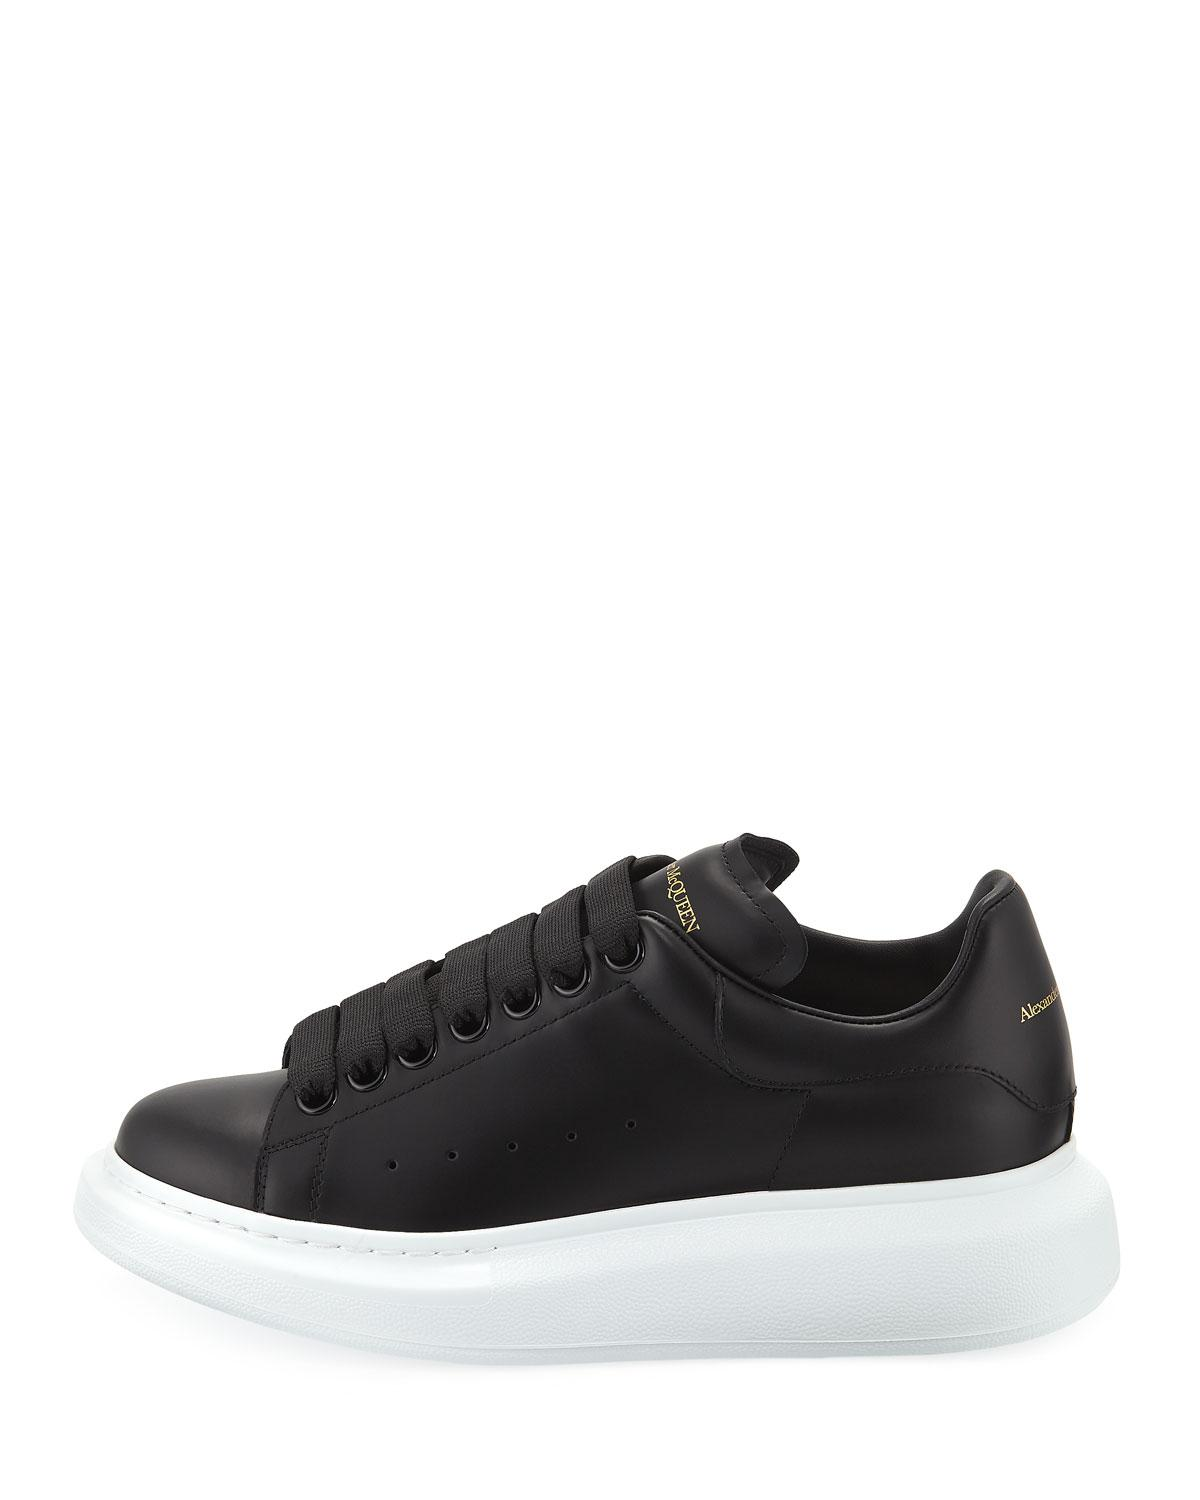 3895c415d Lyst - Alexander McQueen Pelle Lace-up Sneakers in Black